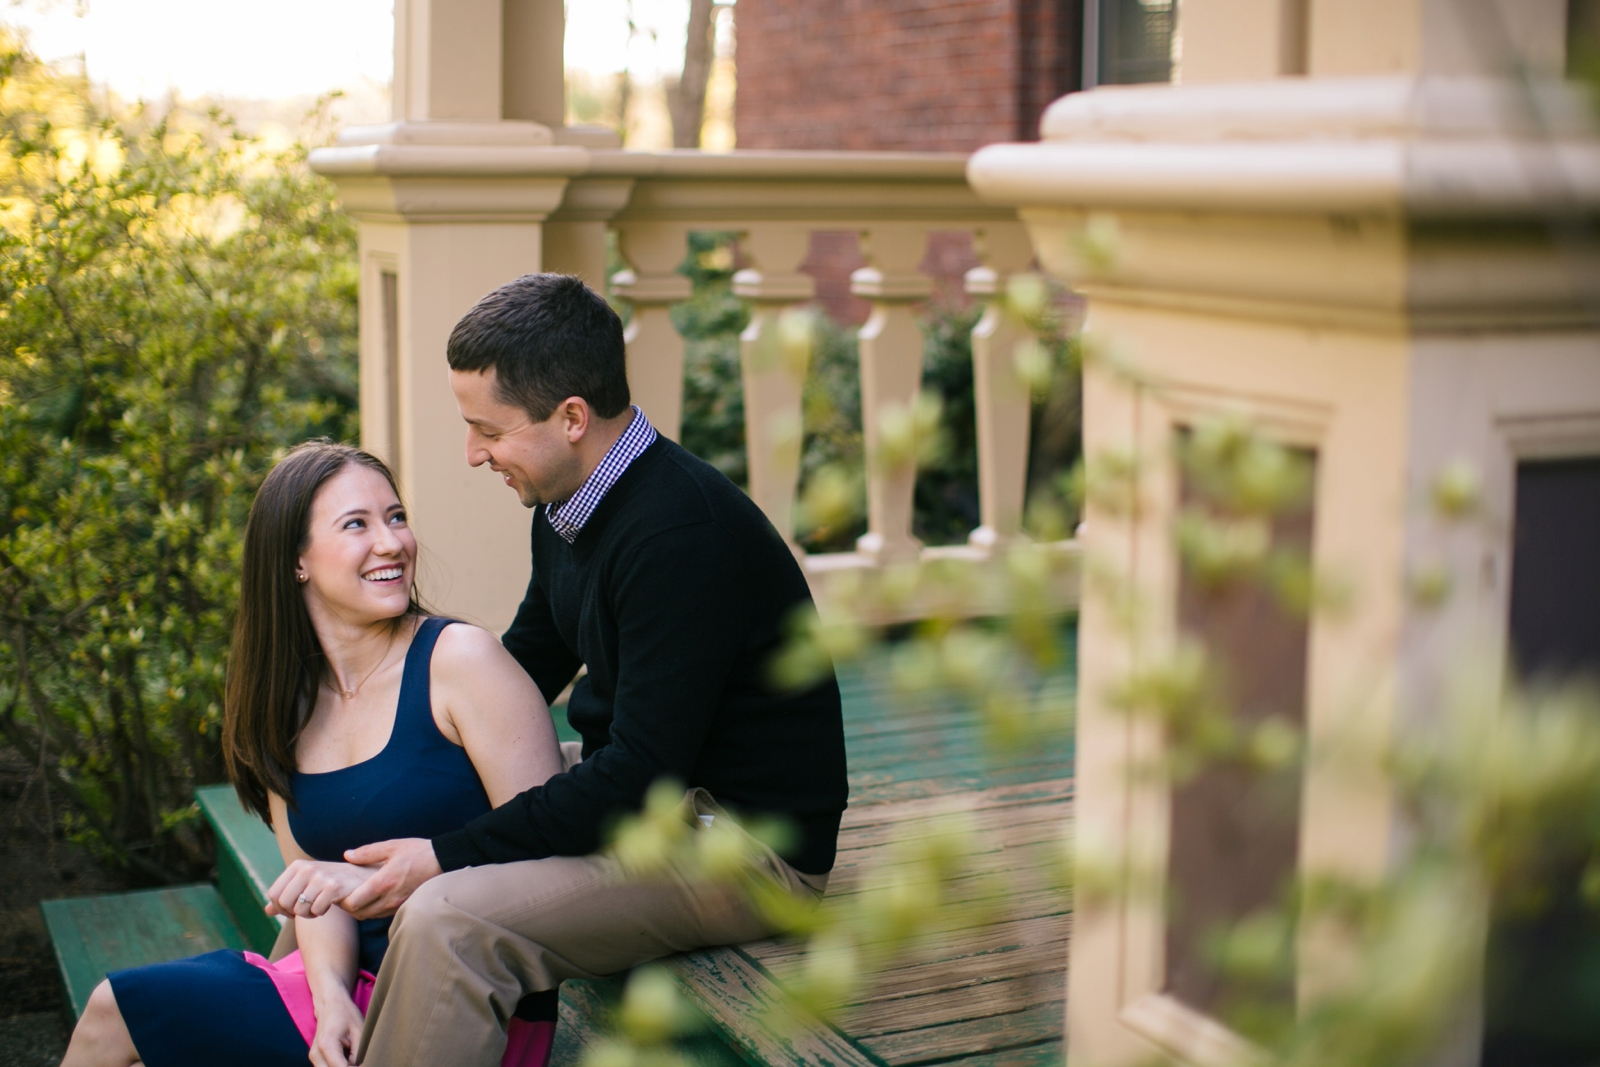 Casual engagement portraits of couple sitting on stoop and laughing together at Wellesley college.